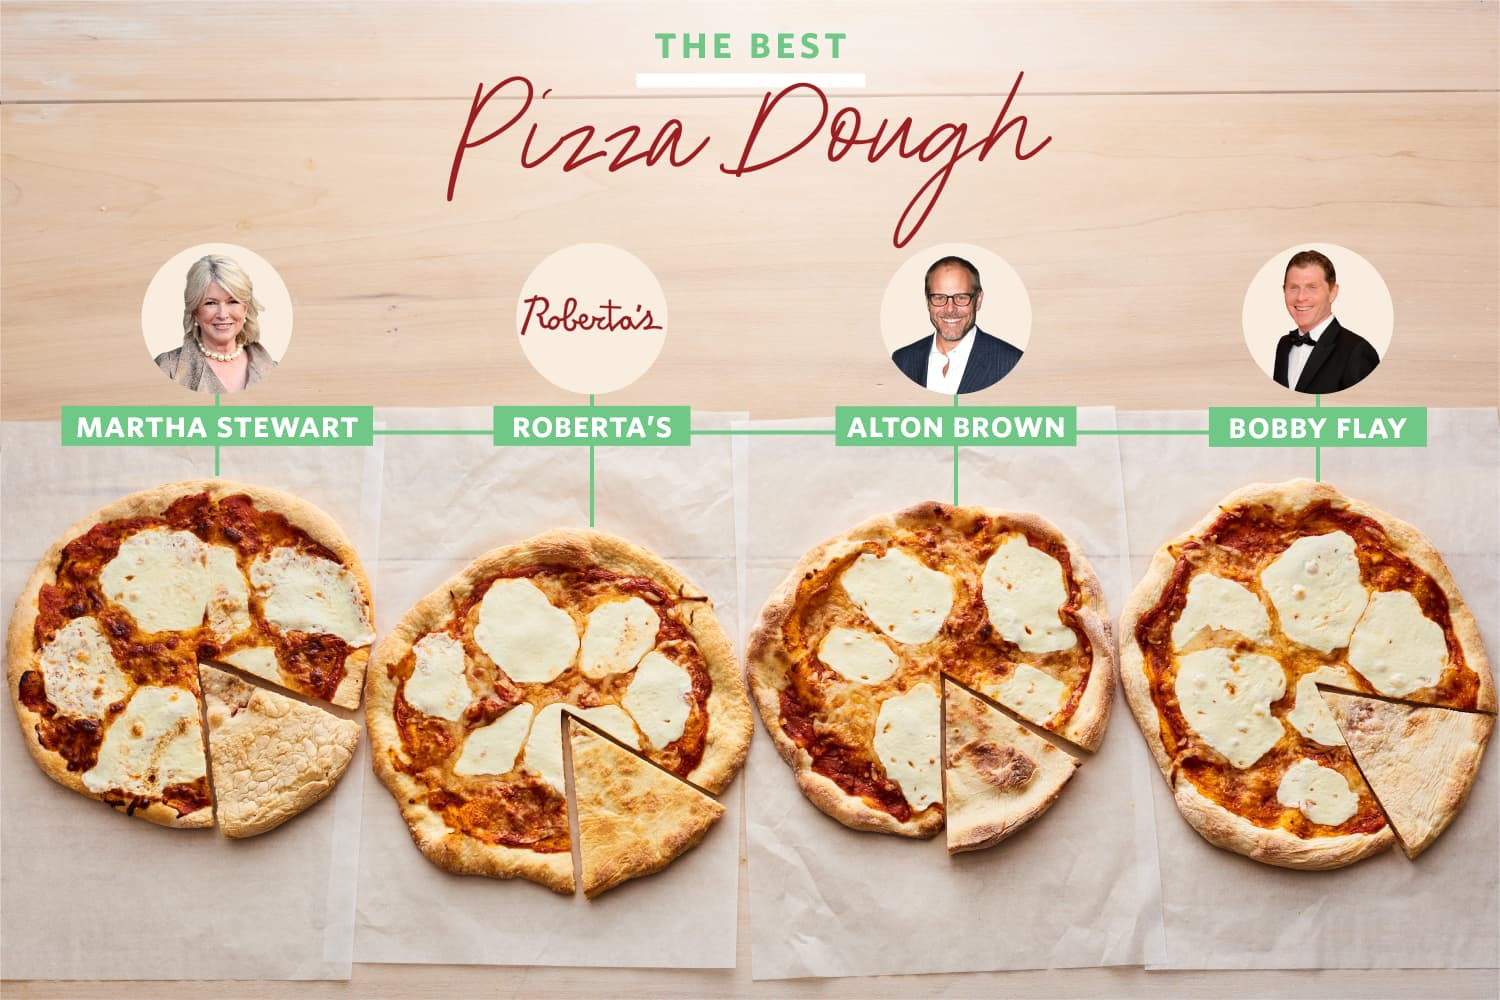 We Tested 4 Famous Pizza Dough Recipes — And 1 Really Stood Out